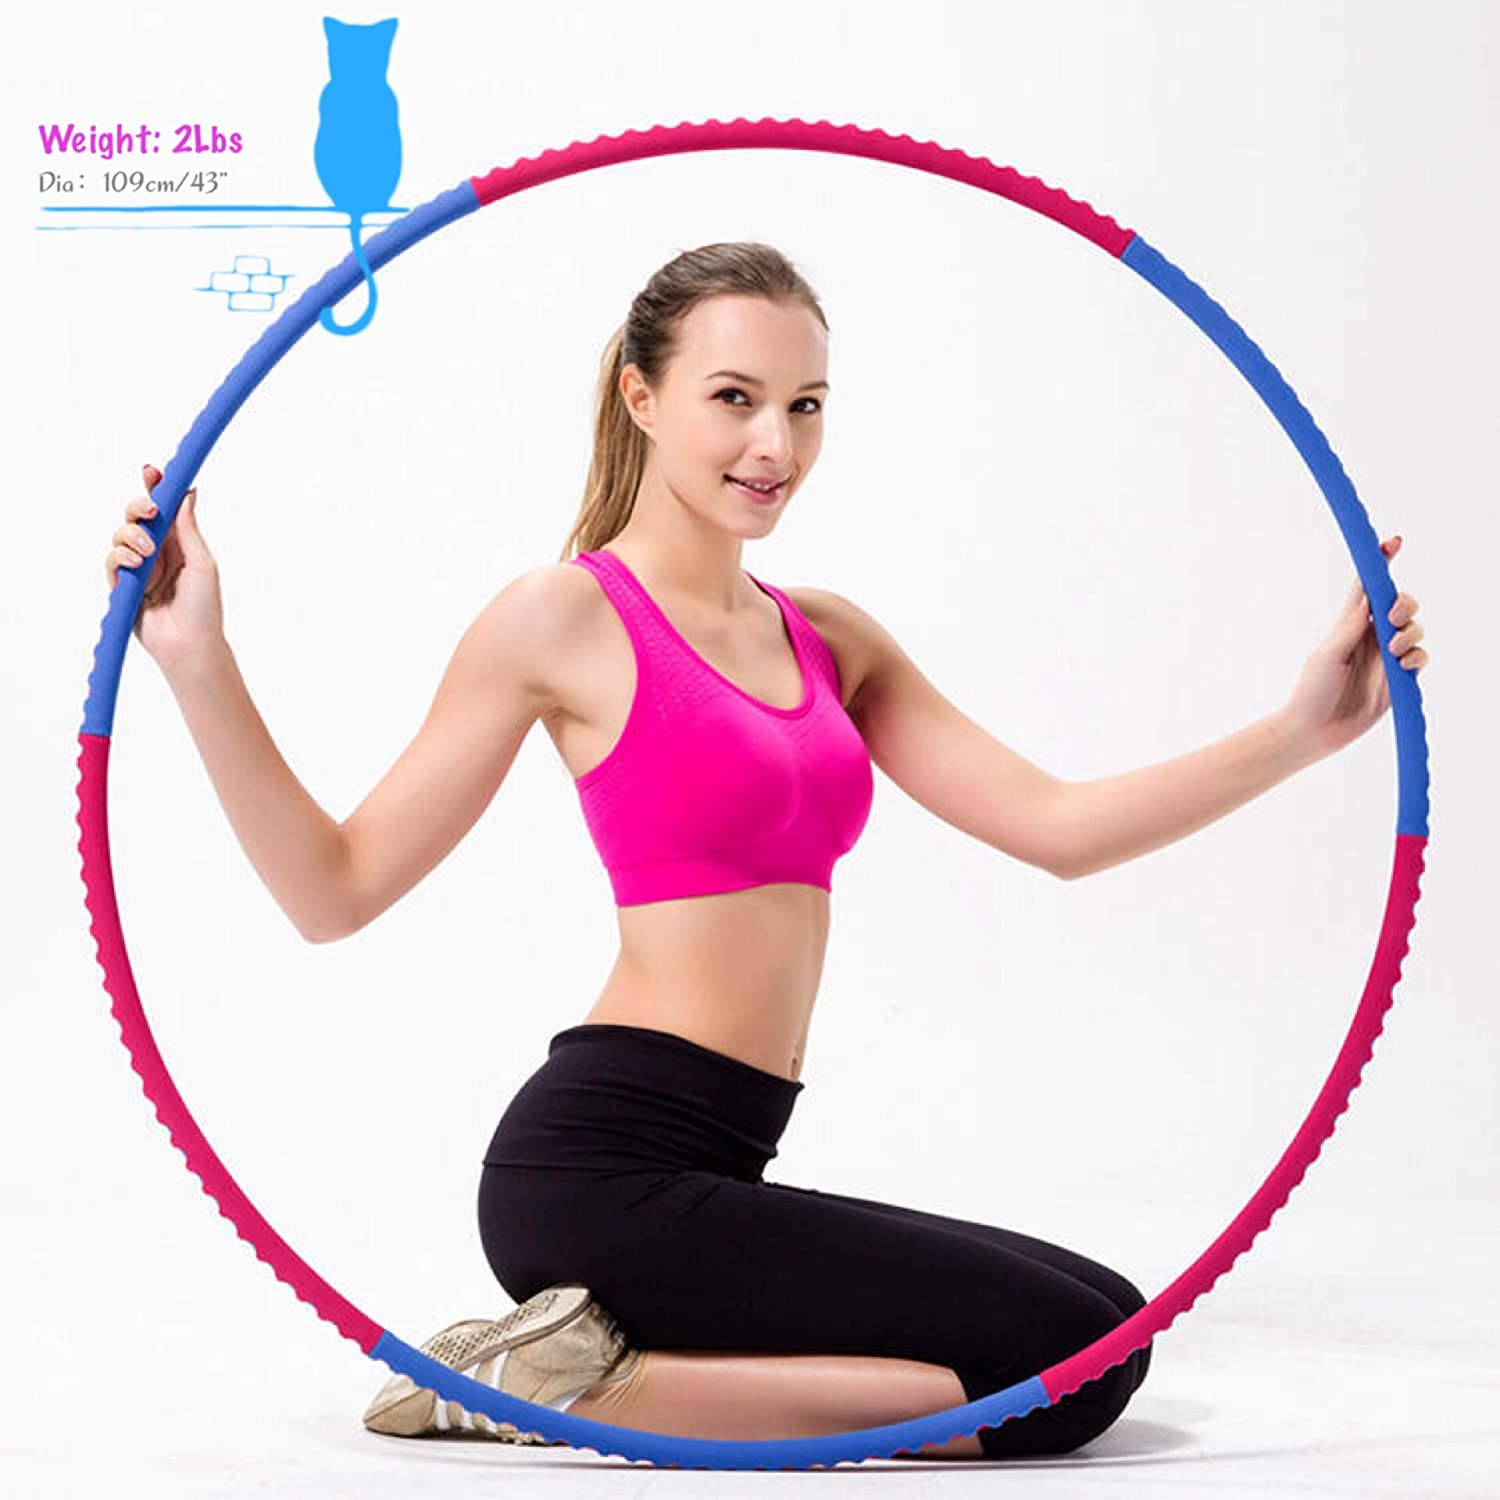 SMALAZAR Professional Lightweight Metal Foamed Hula Hoop Perfect for Dancing Fitness Exercise  Workouts for Adults and Kids  Simply The Funnest Way to Lose Weight (23lbs)